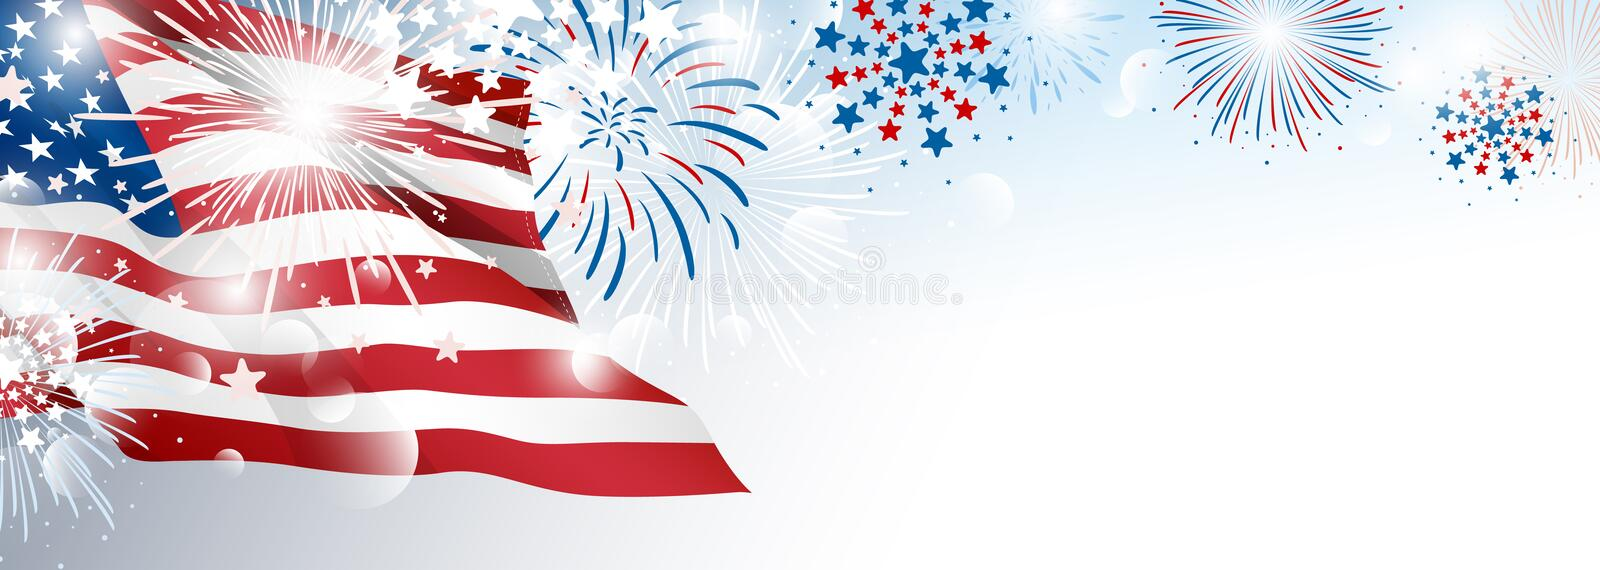 4th of july USA Independence day banner background design of American flag with fireworks. Vector illustration royalty free illustration